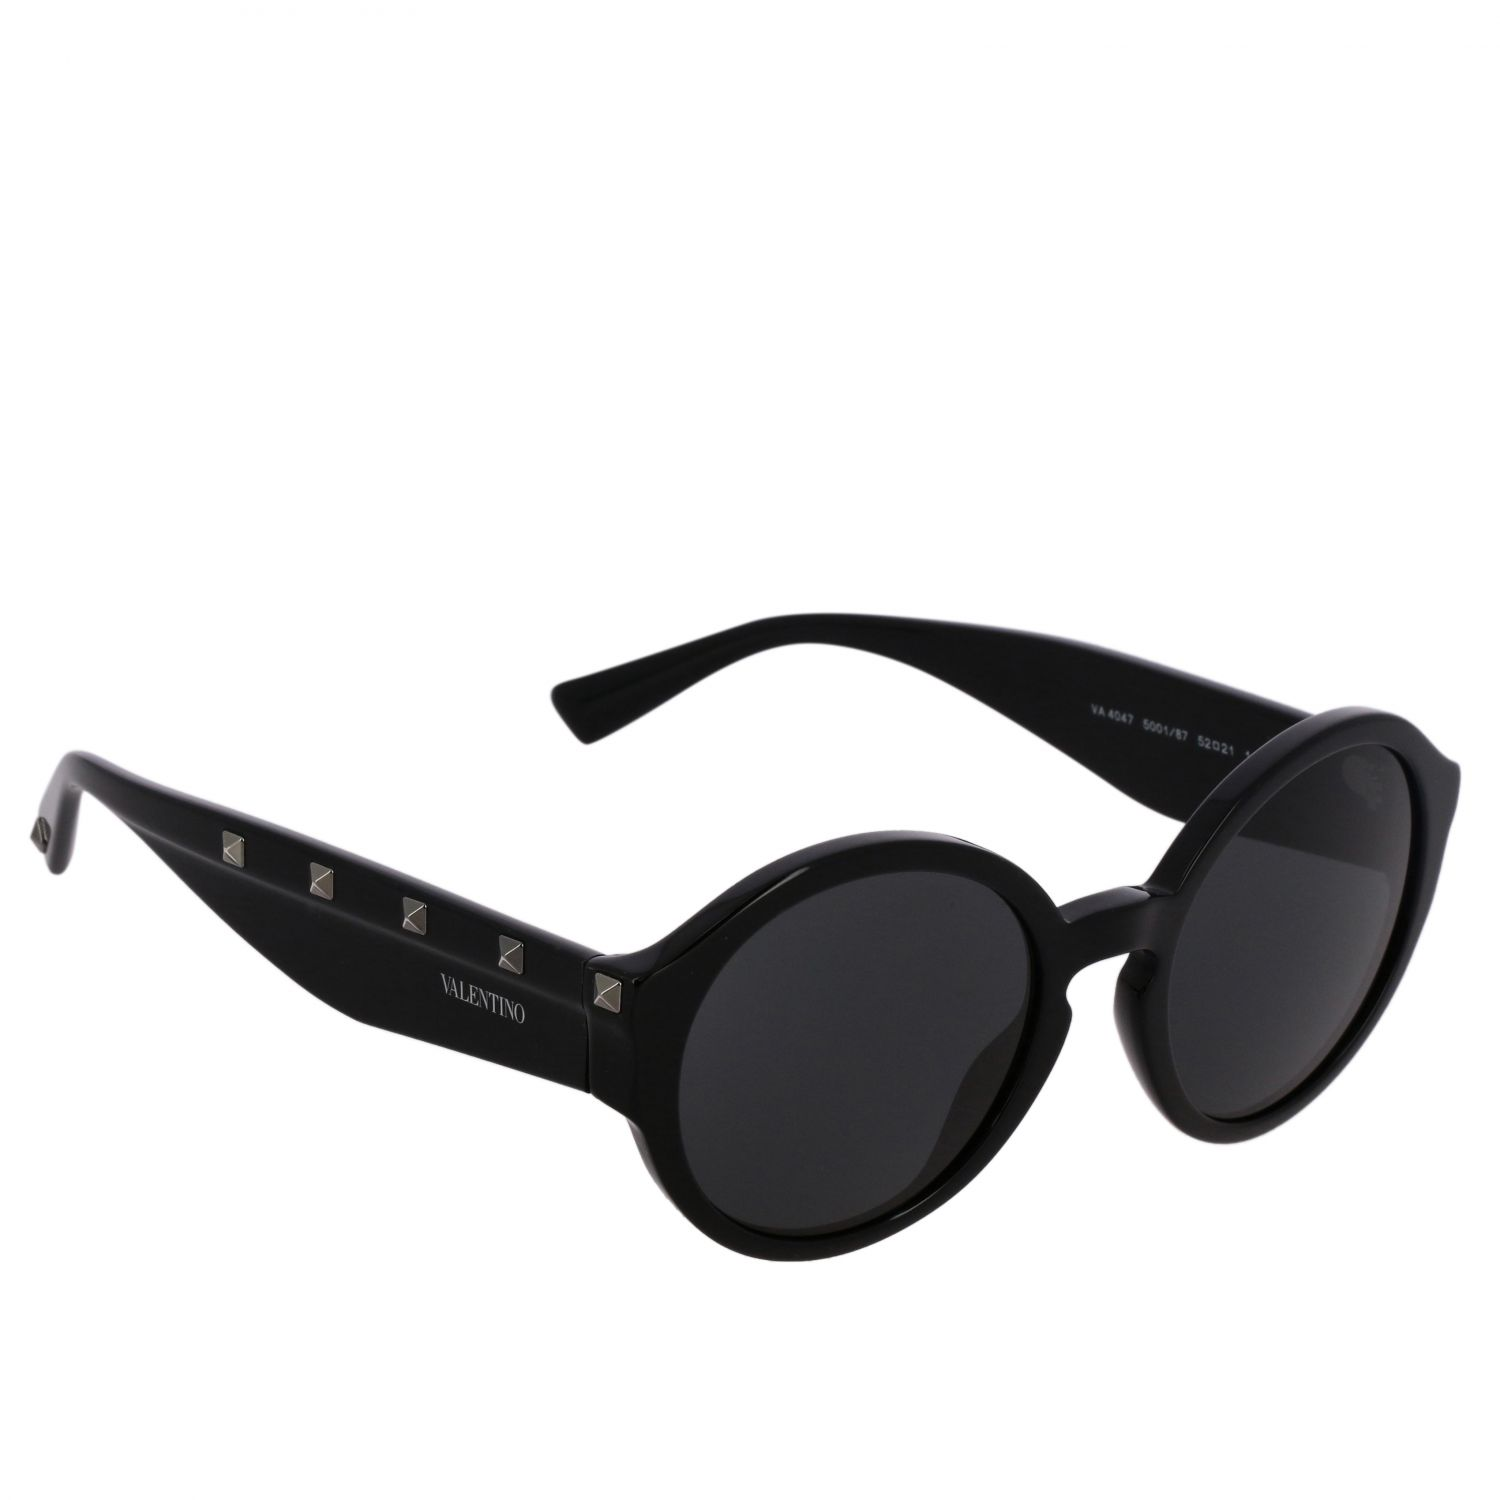 Glasses Valentino: Glasses women Valentino black 1